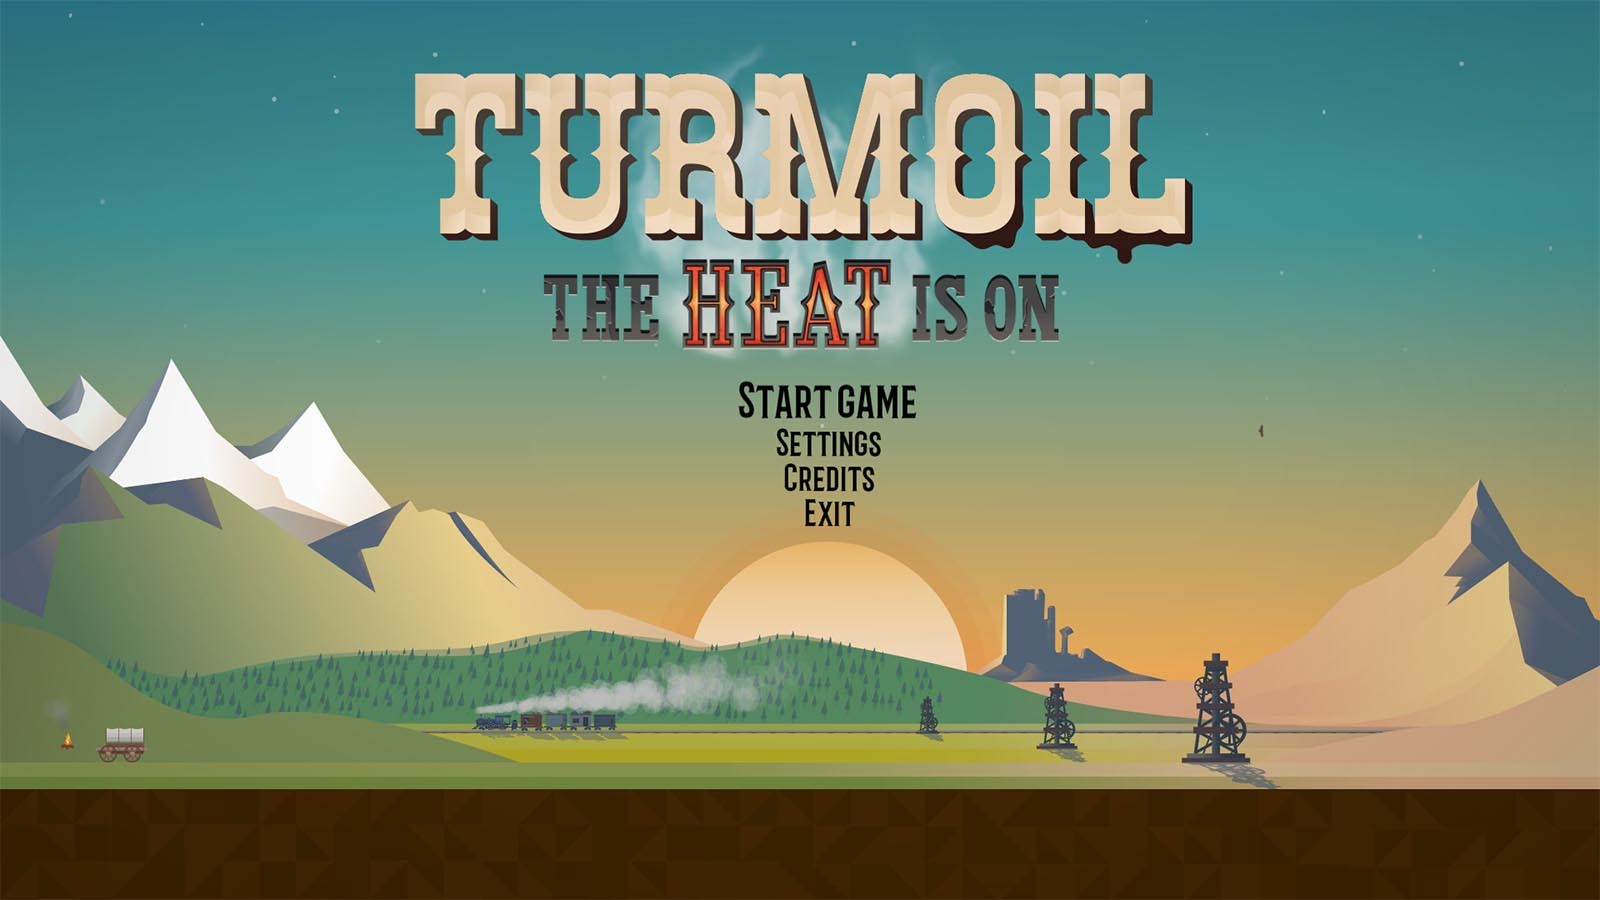 Turmoil - The Heat Is On [Steam CD Key] for PC, Mac and Linux - Buy now